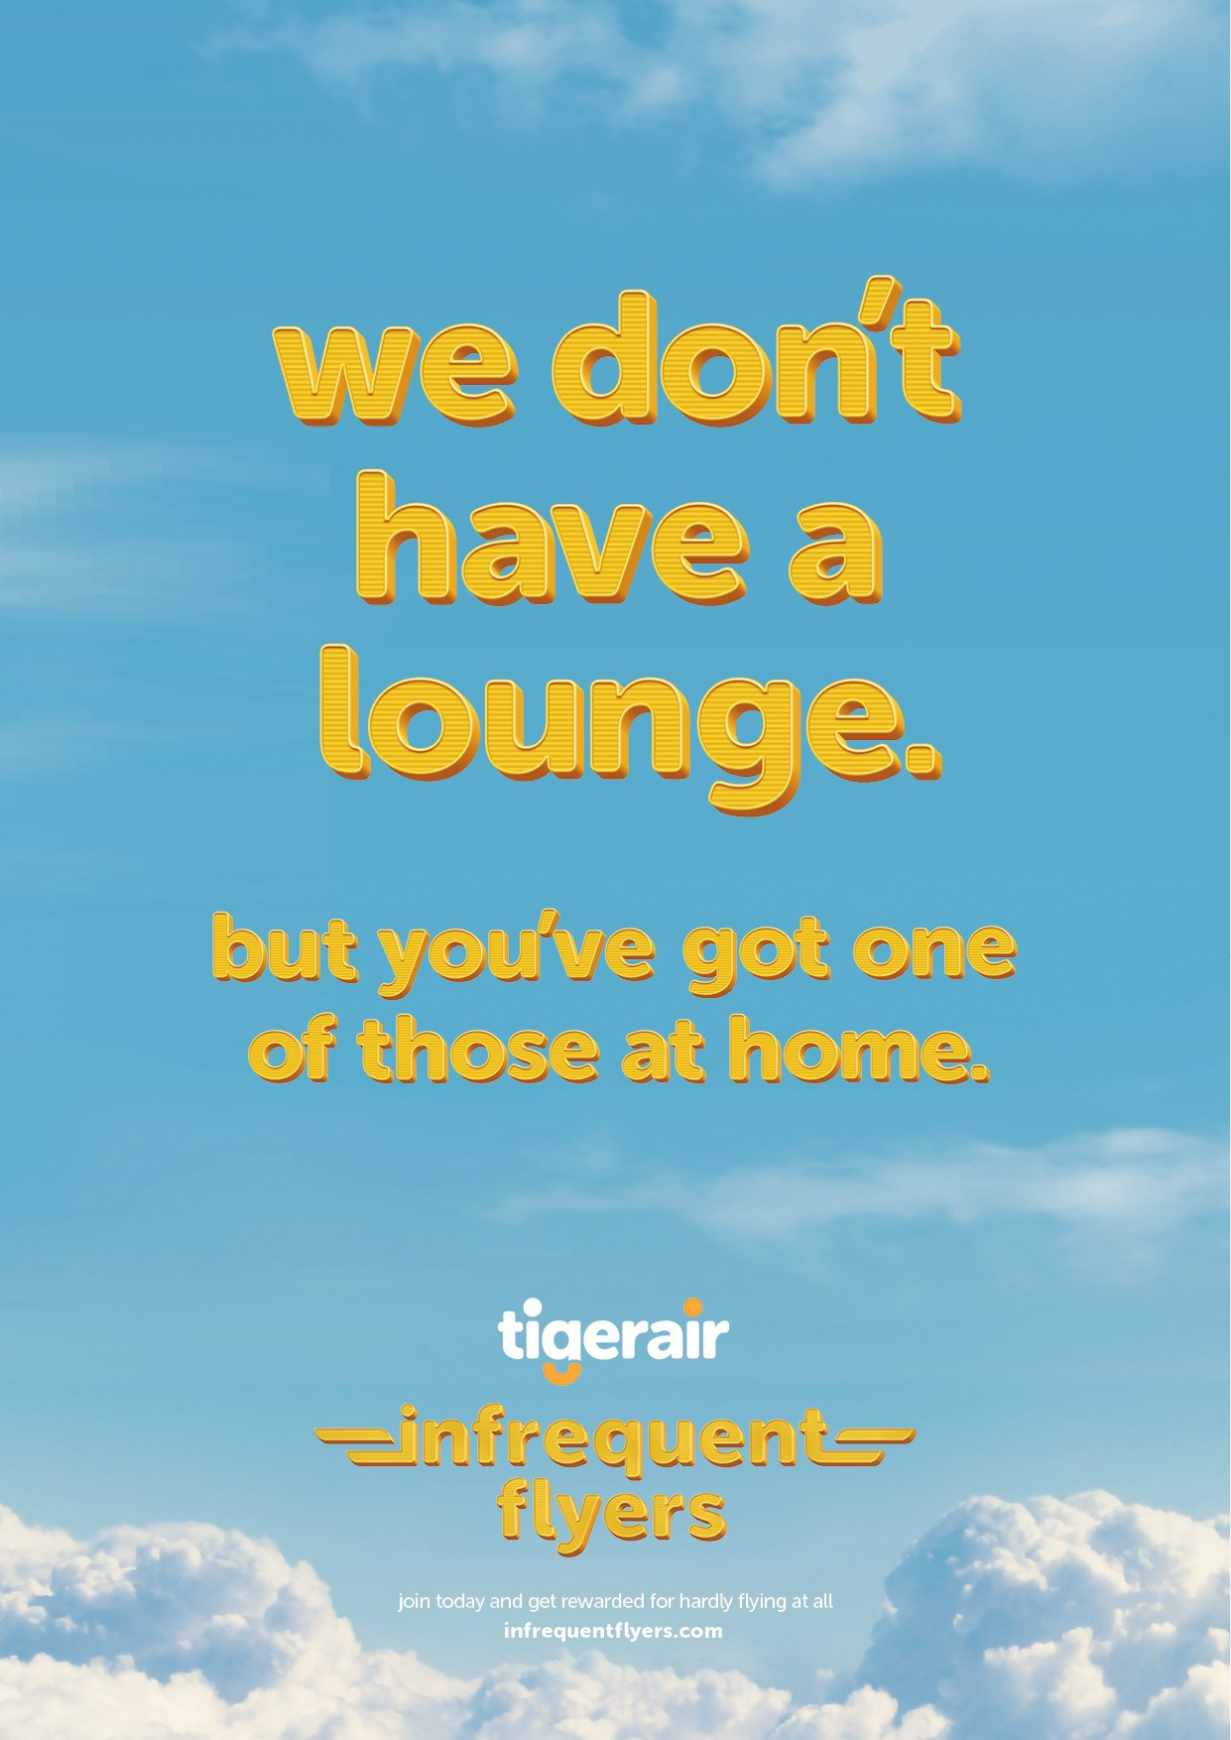 Tiger Air_we dont have a lounge